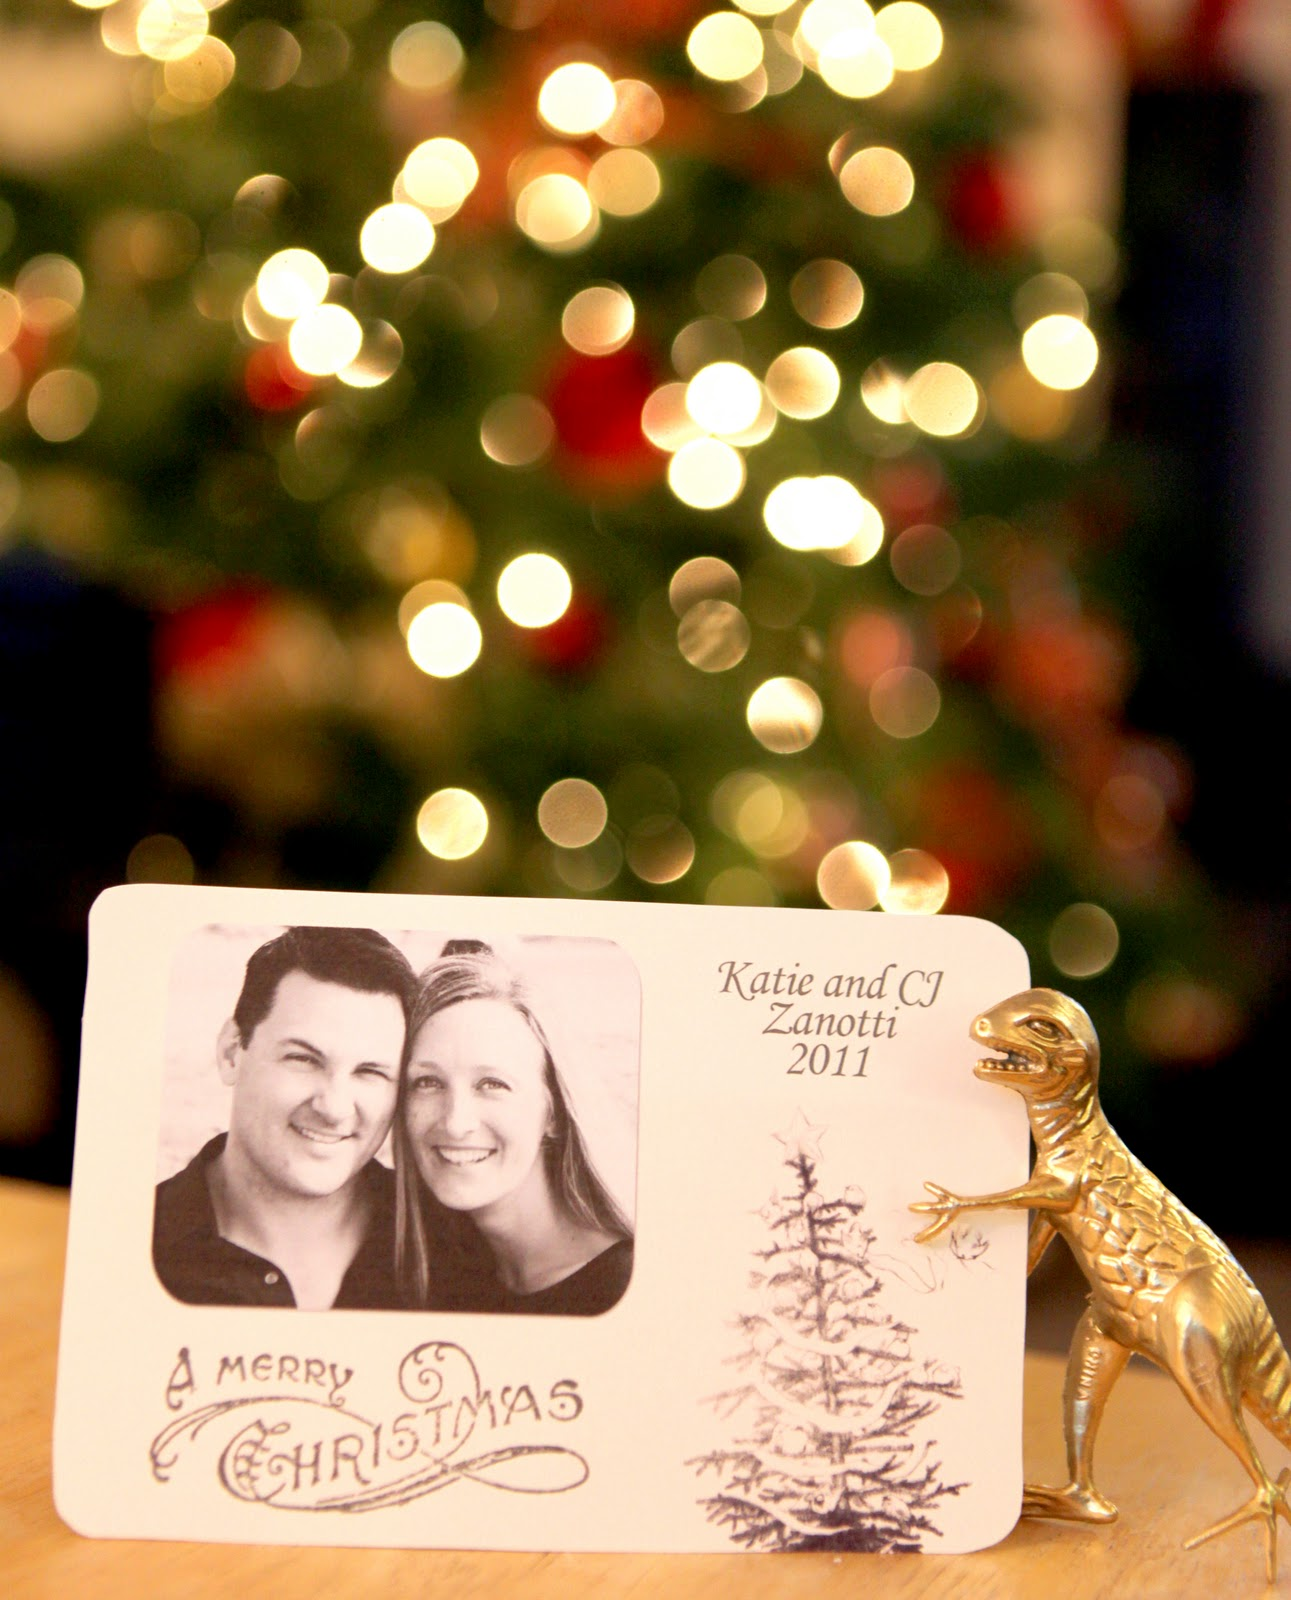 Chloe Moore Photography // The Blog: Free Christmas Card Templates!